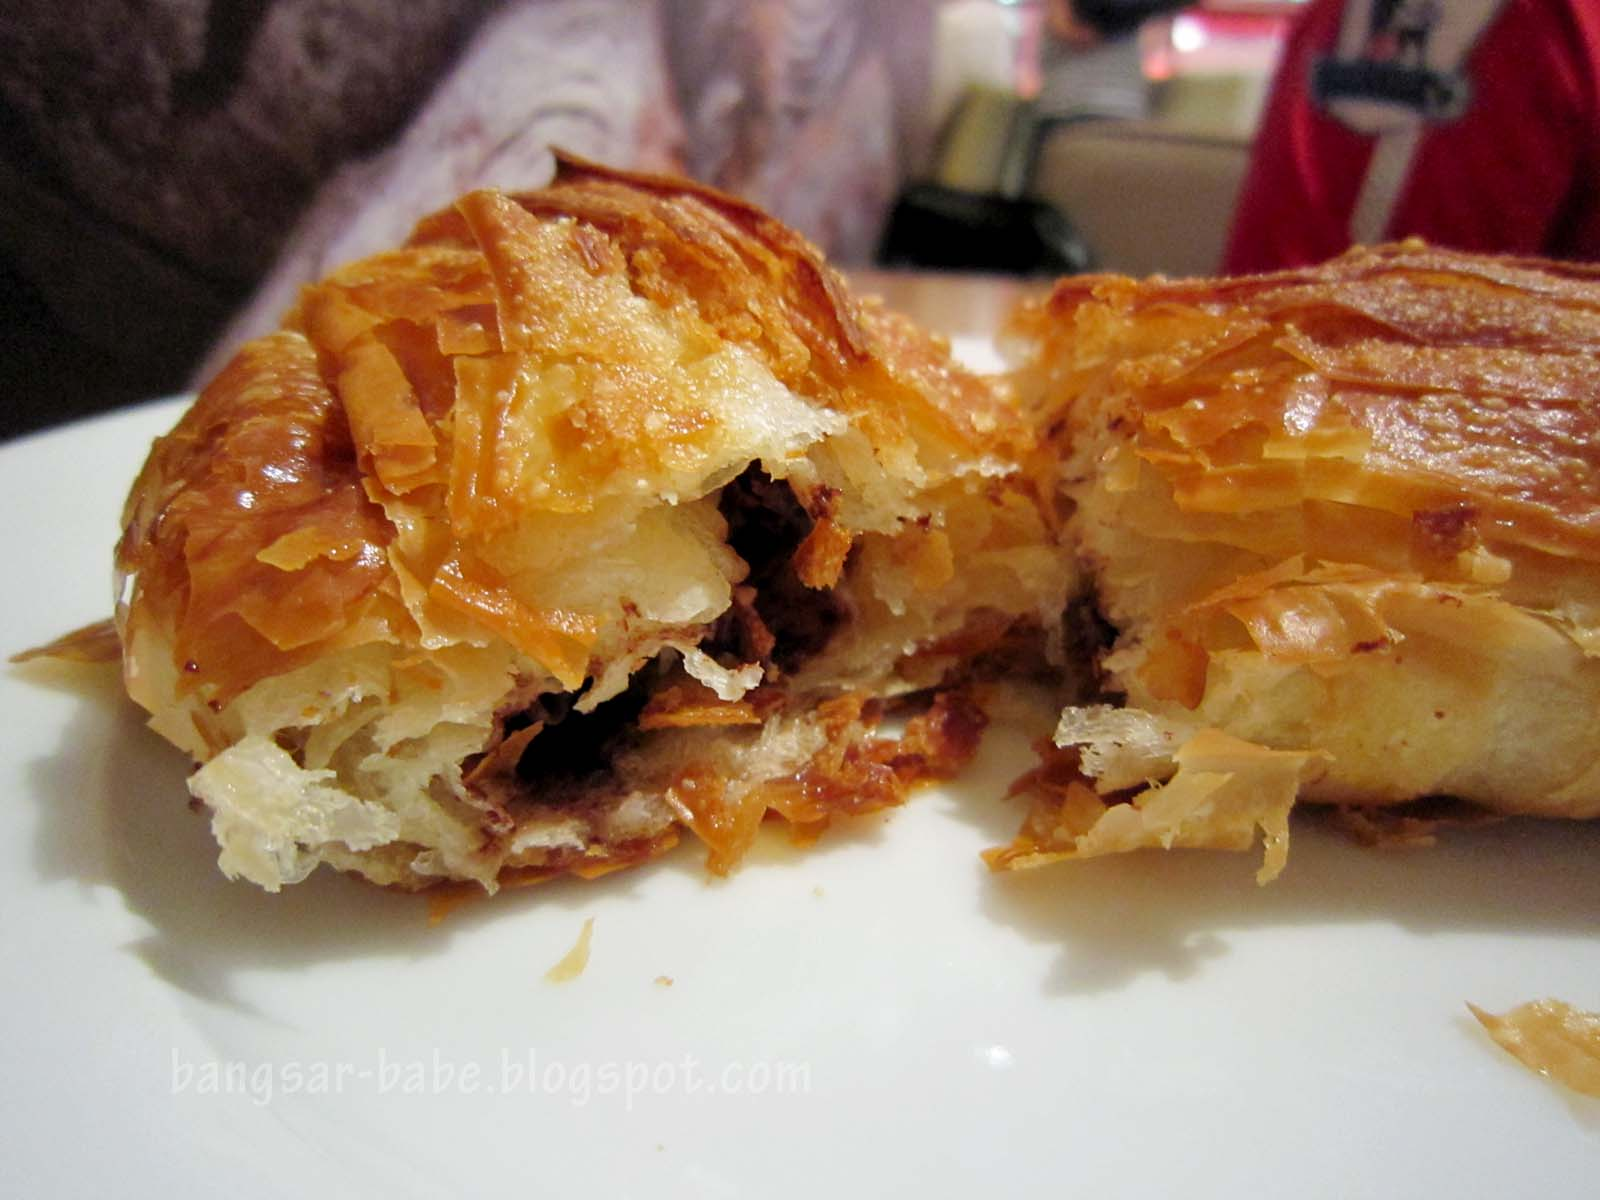 -filled croissant with layers. The pastry was flaky and nicely glazed ...